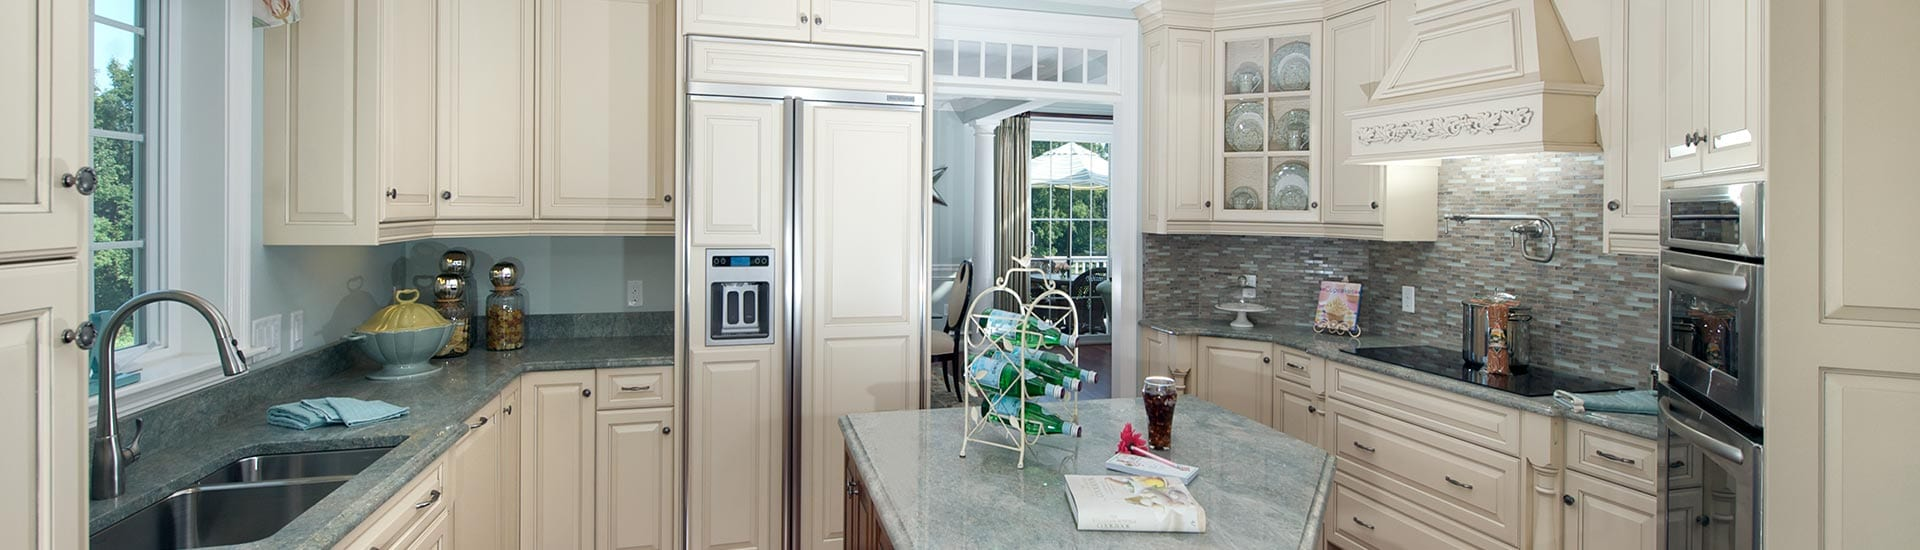 Sellers Kitchen Cabinet Home Kcma Sellers Kitchen Cabinet History Buslineus